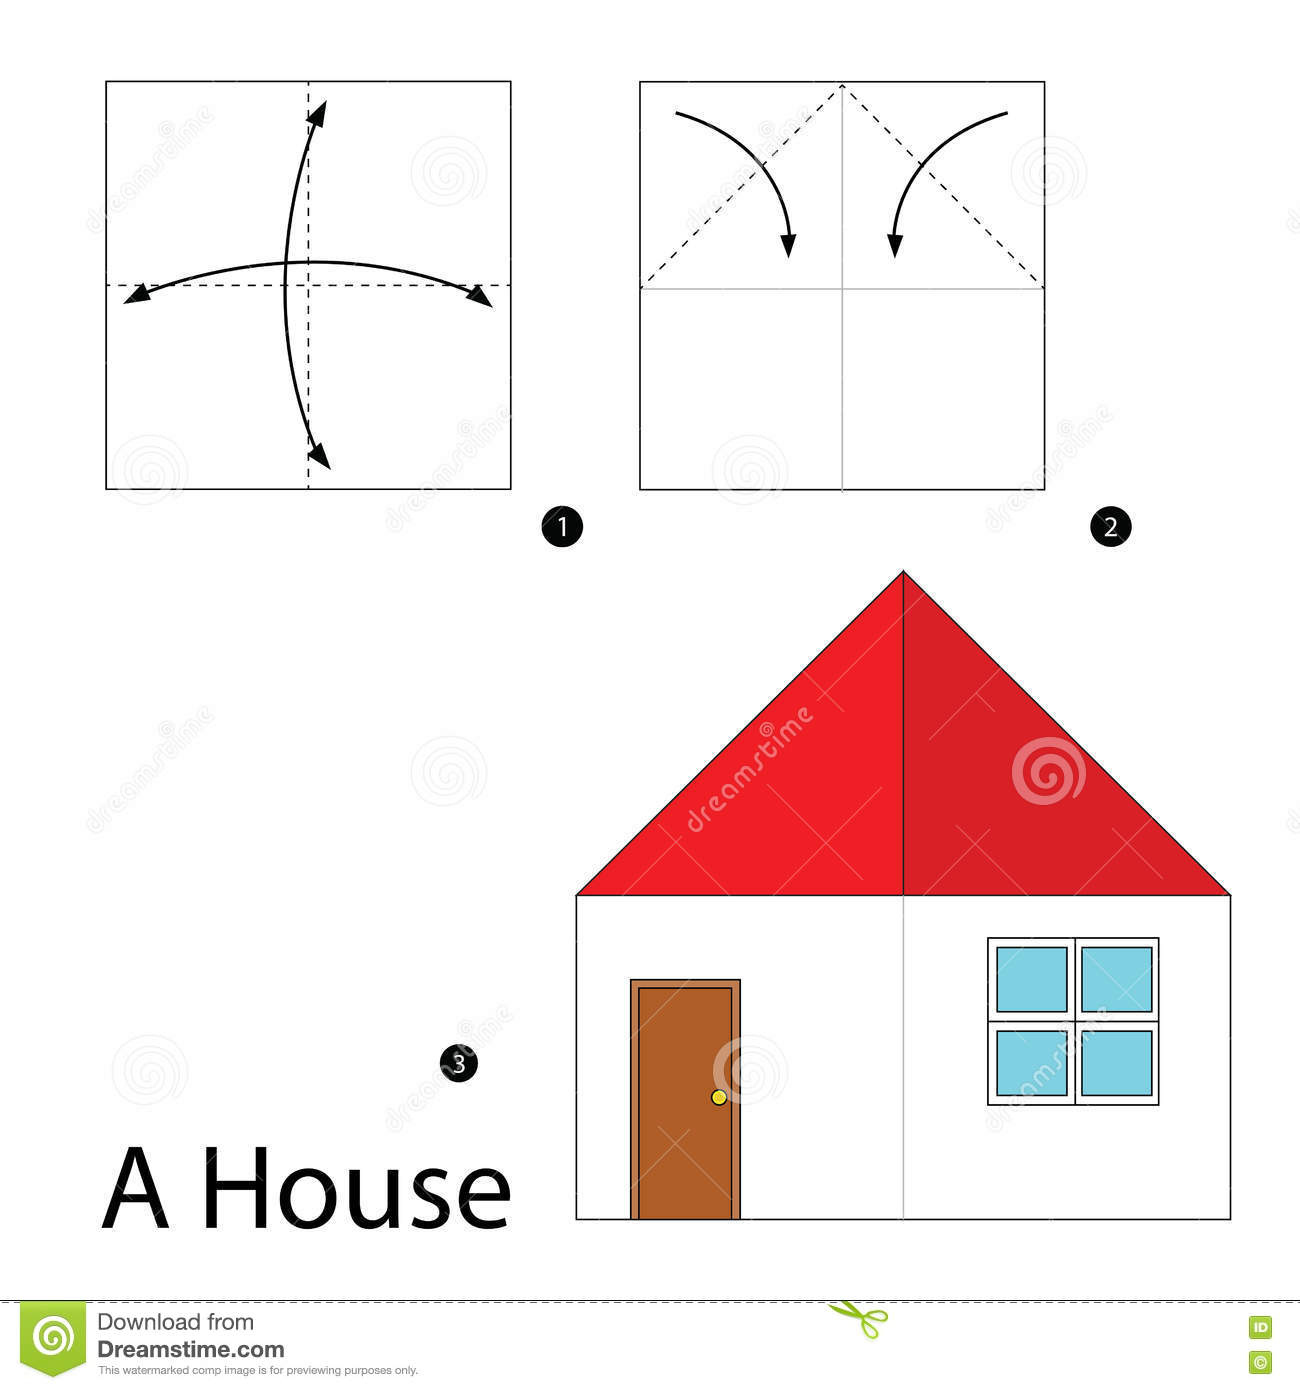 Origami House Comot: step by step to build a house